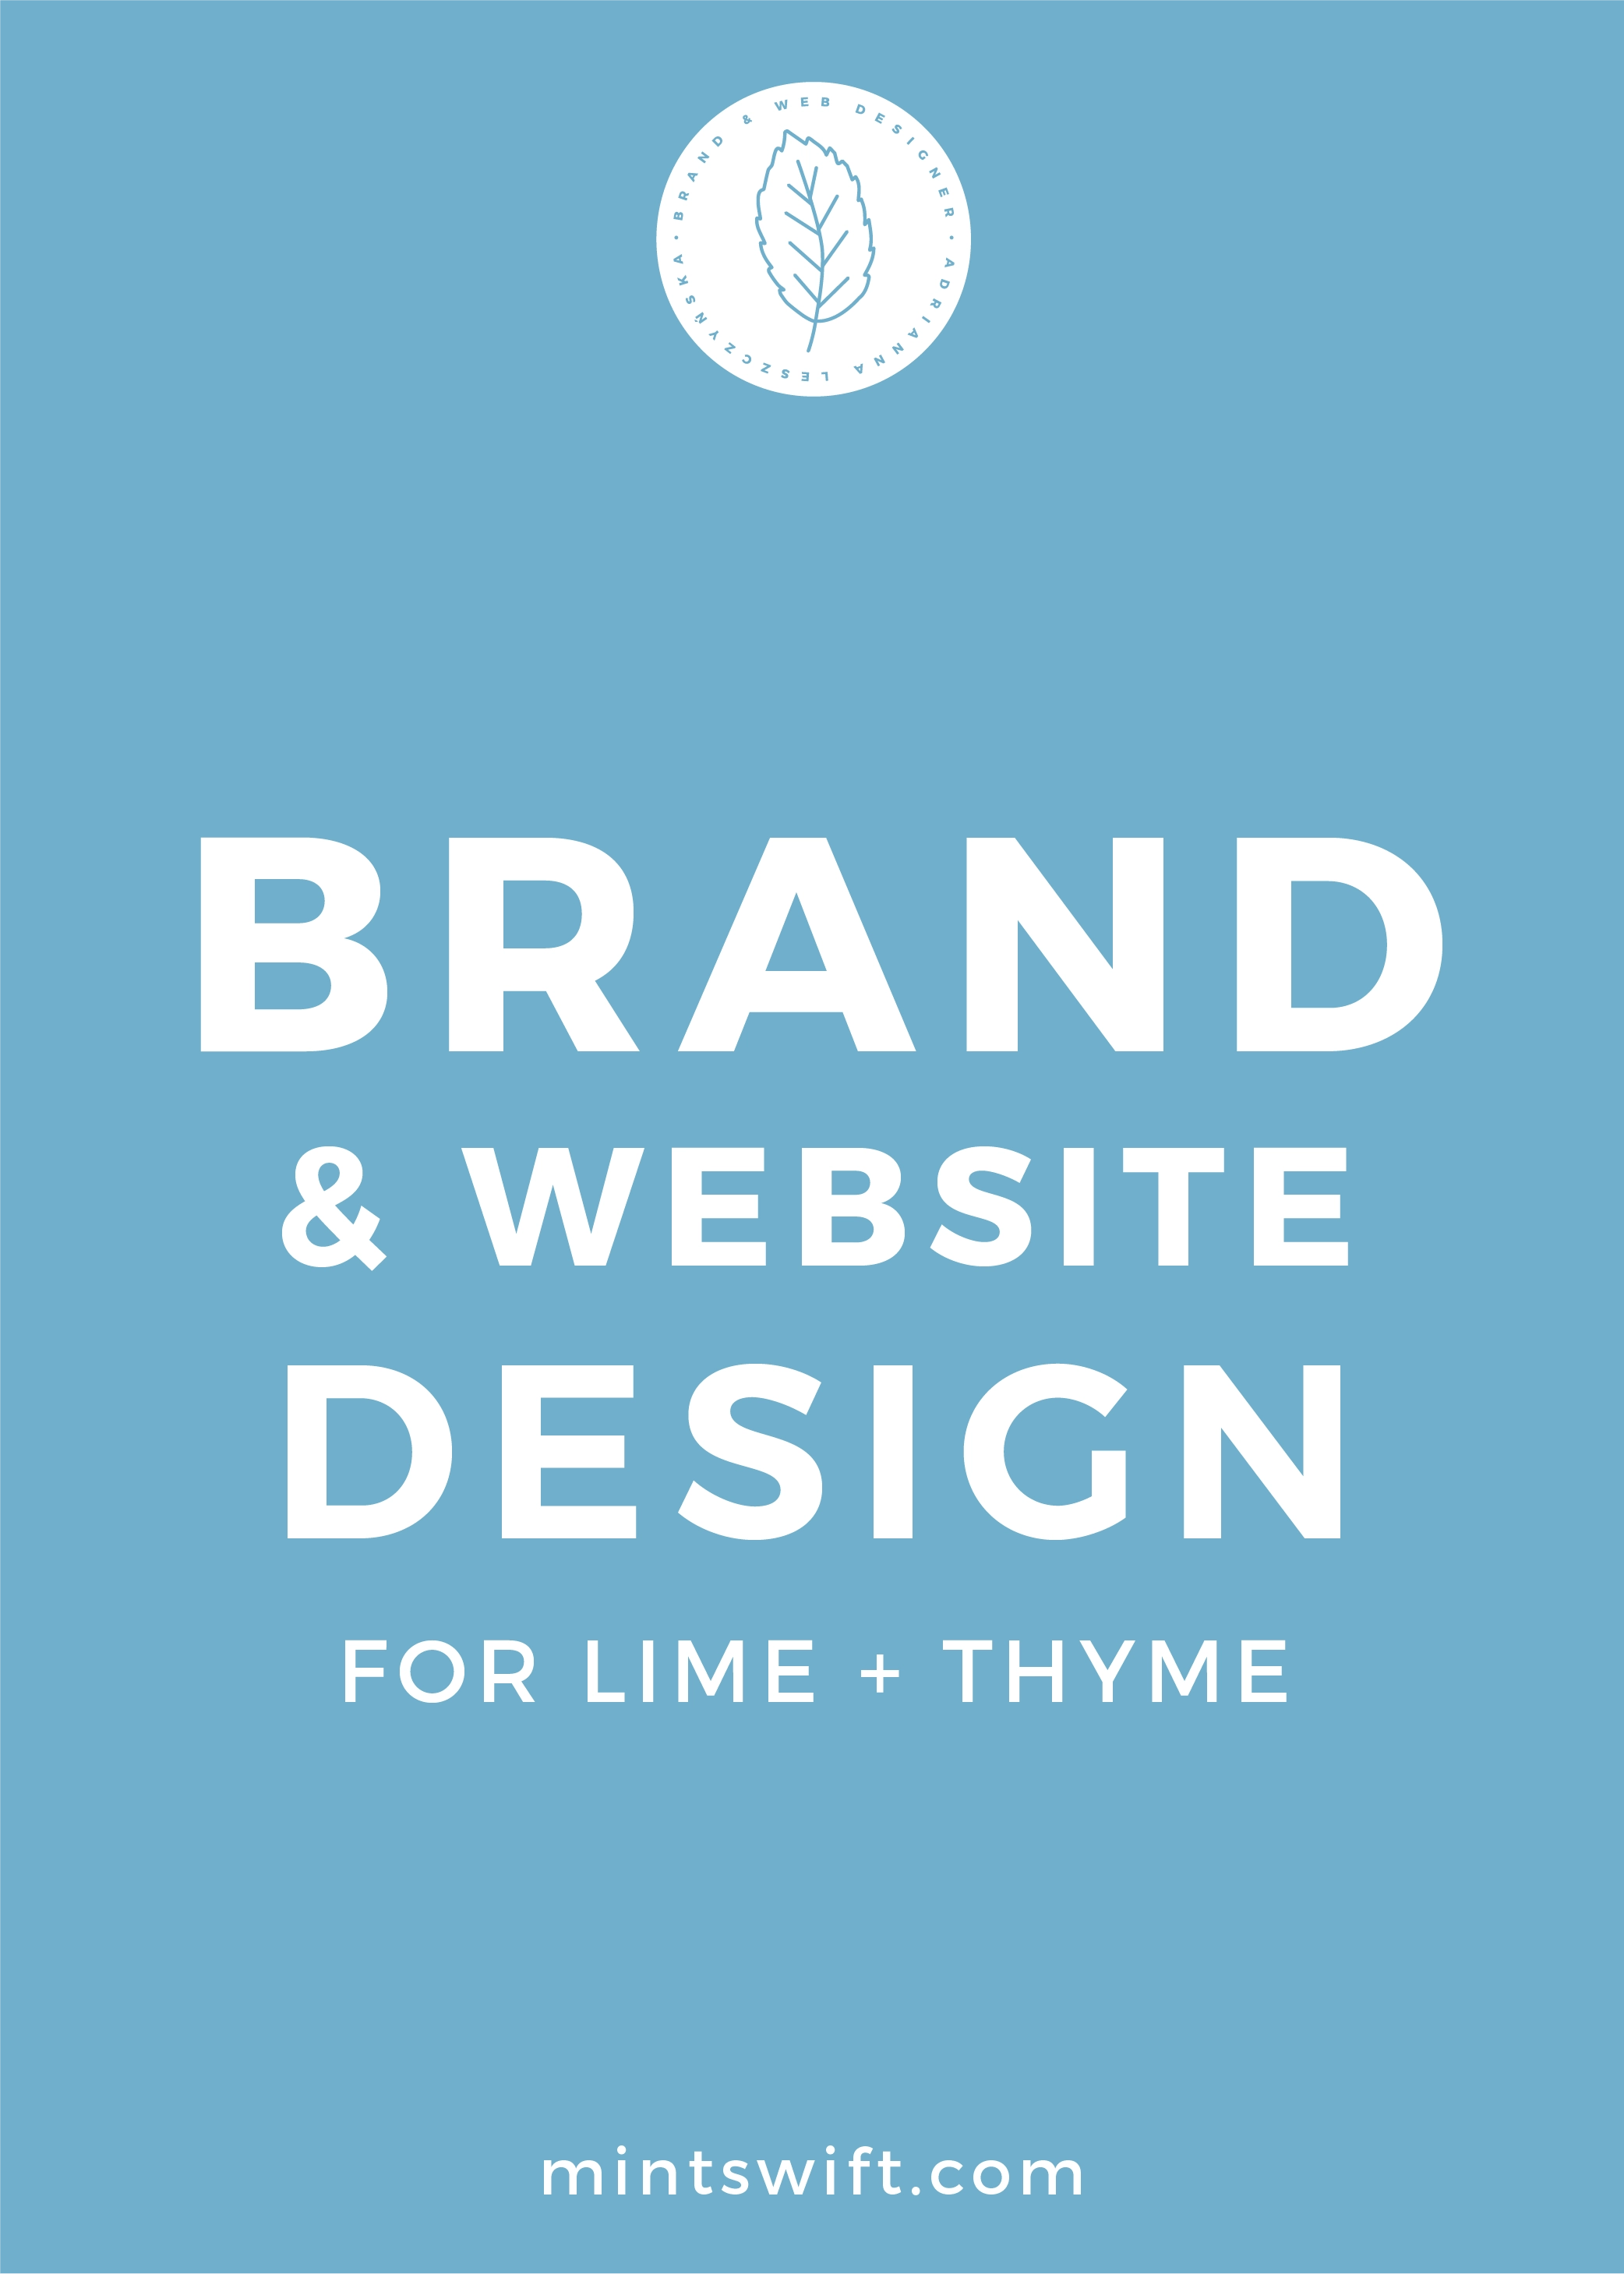 Brand & Website Design for Lime + Thyme - MintSwift